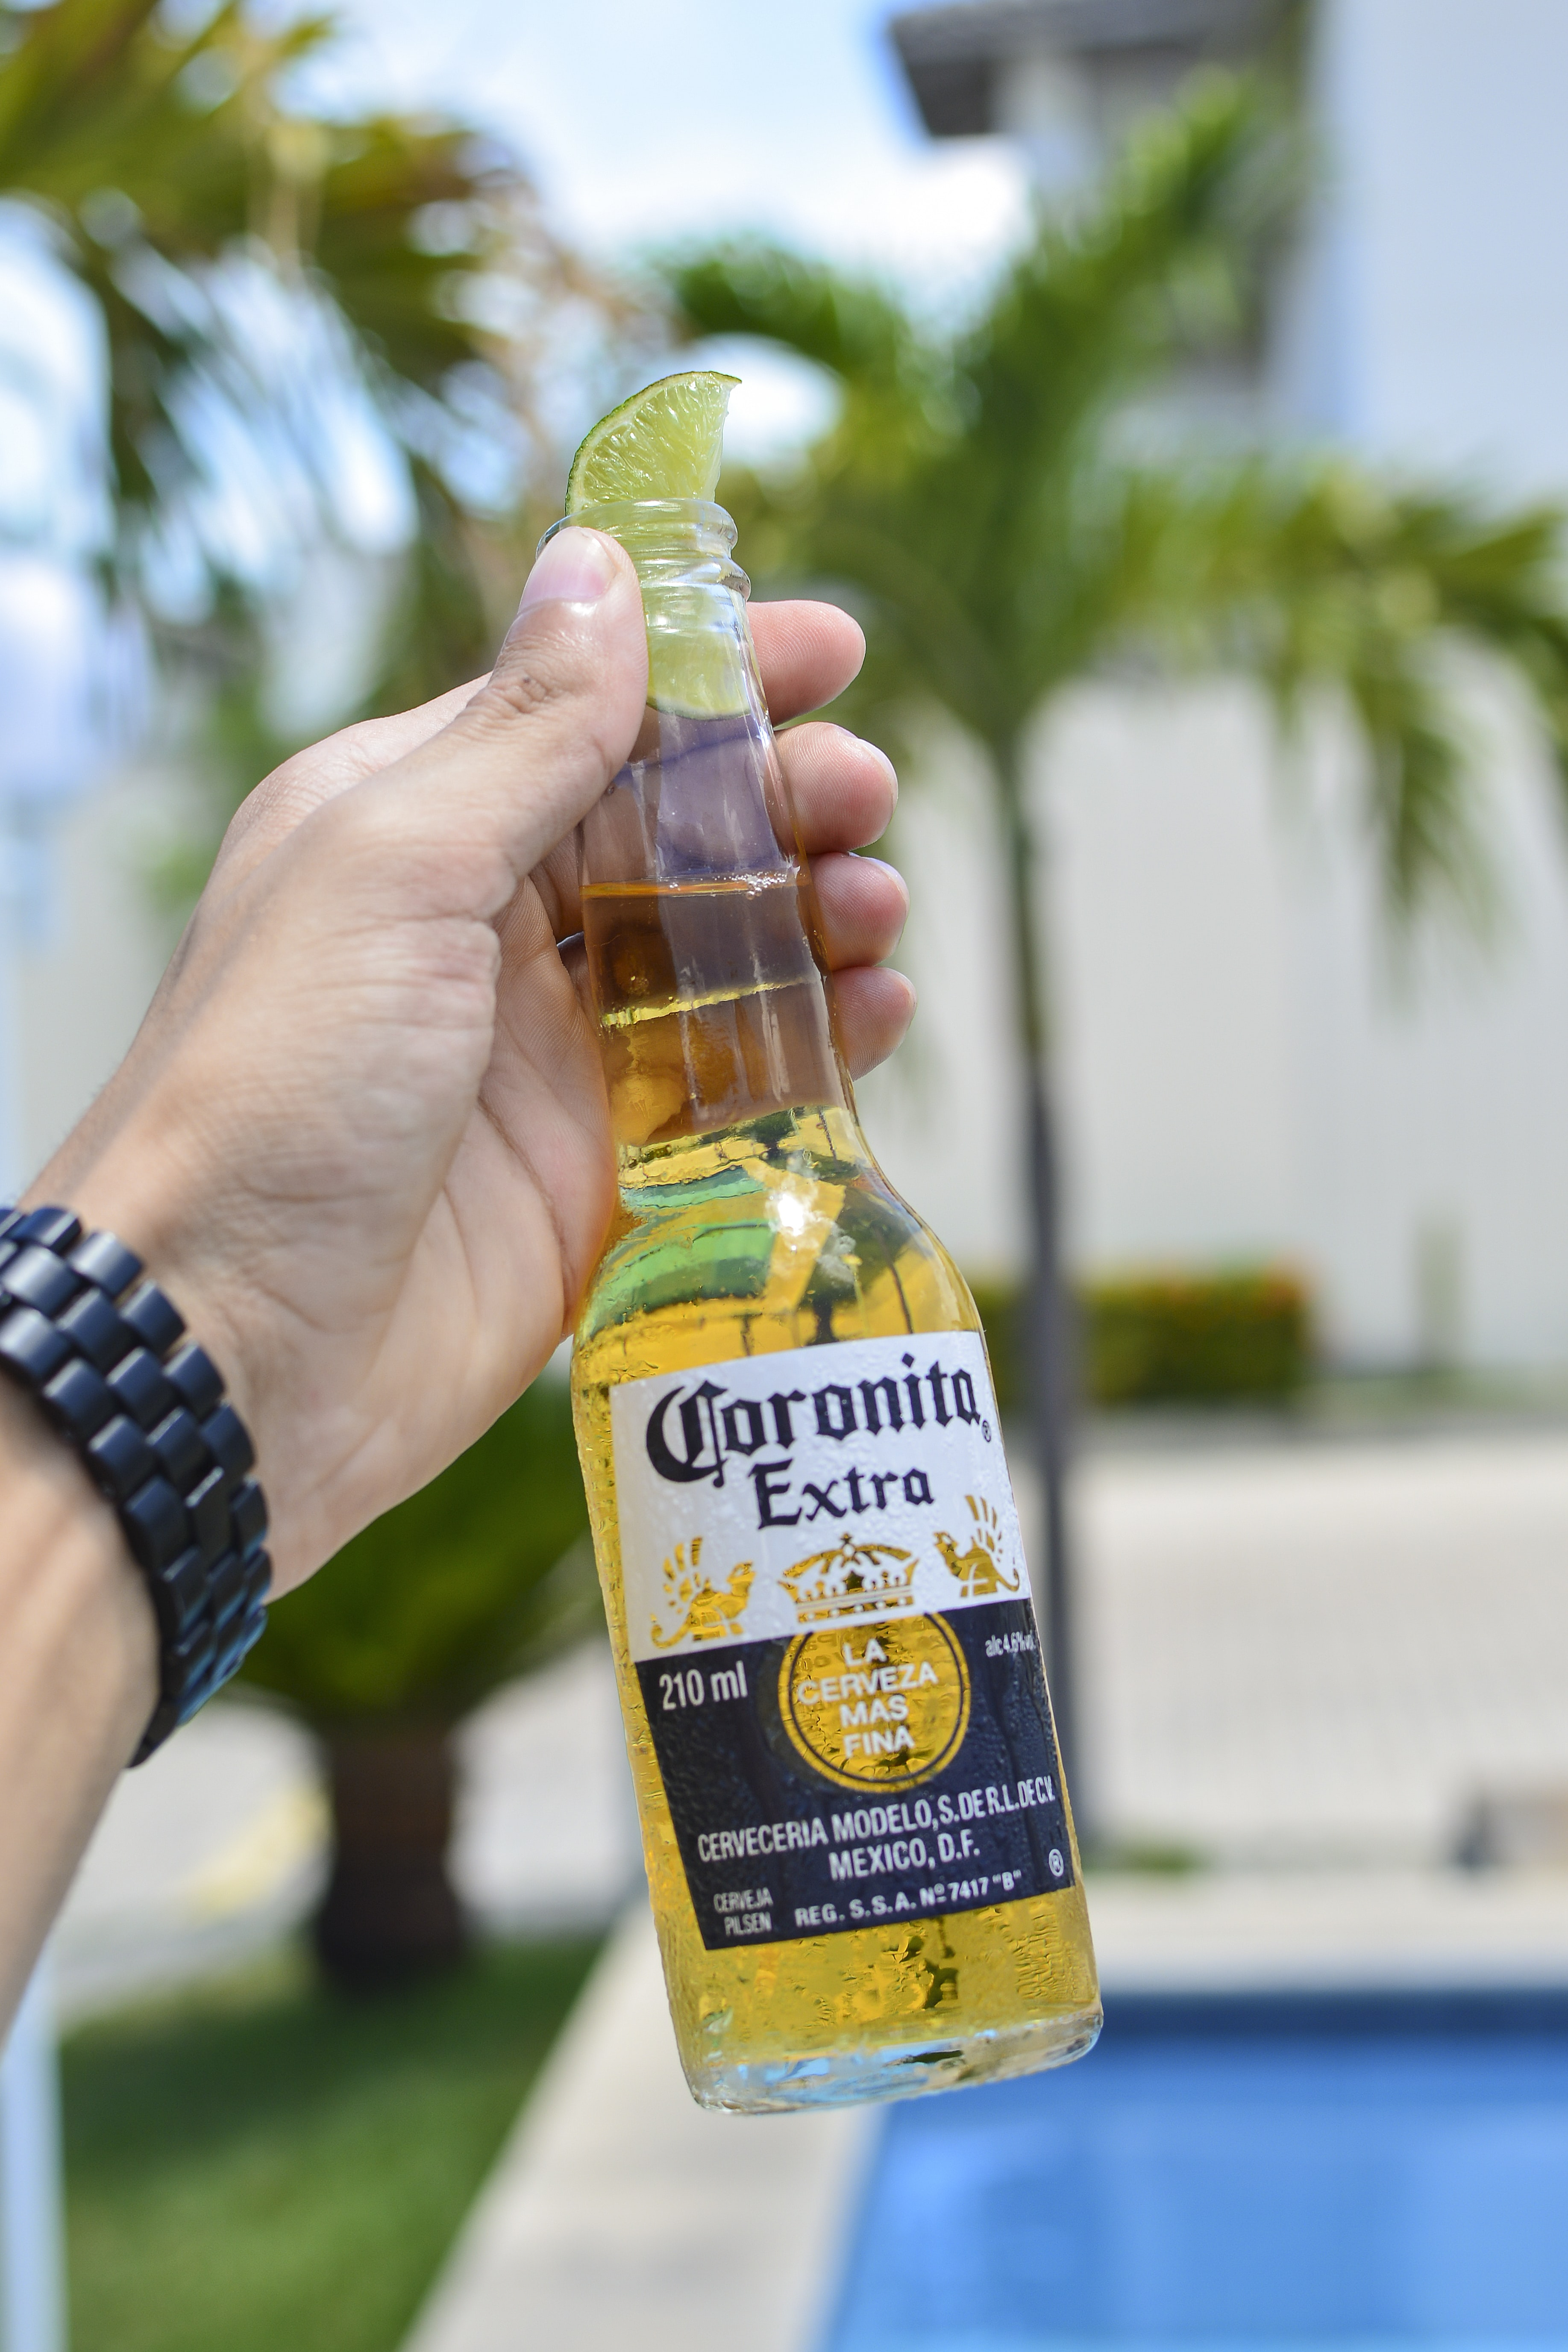 person holding Coronita Extra bottle